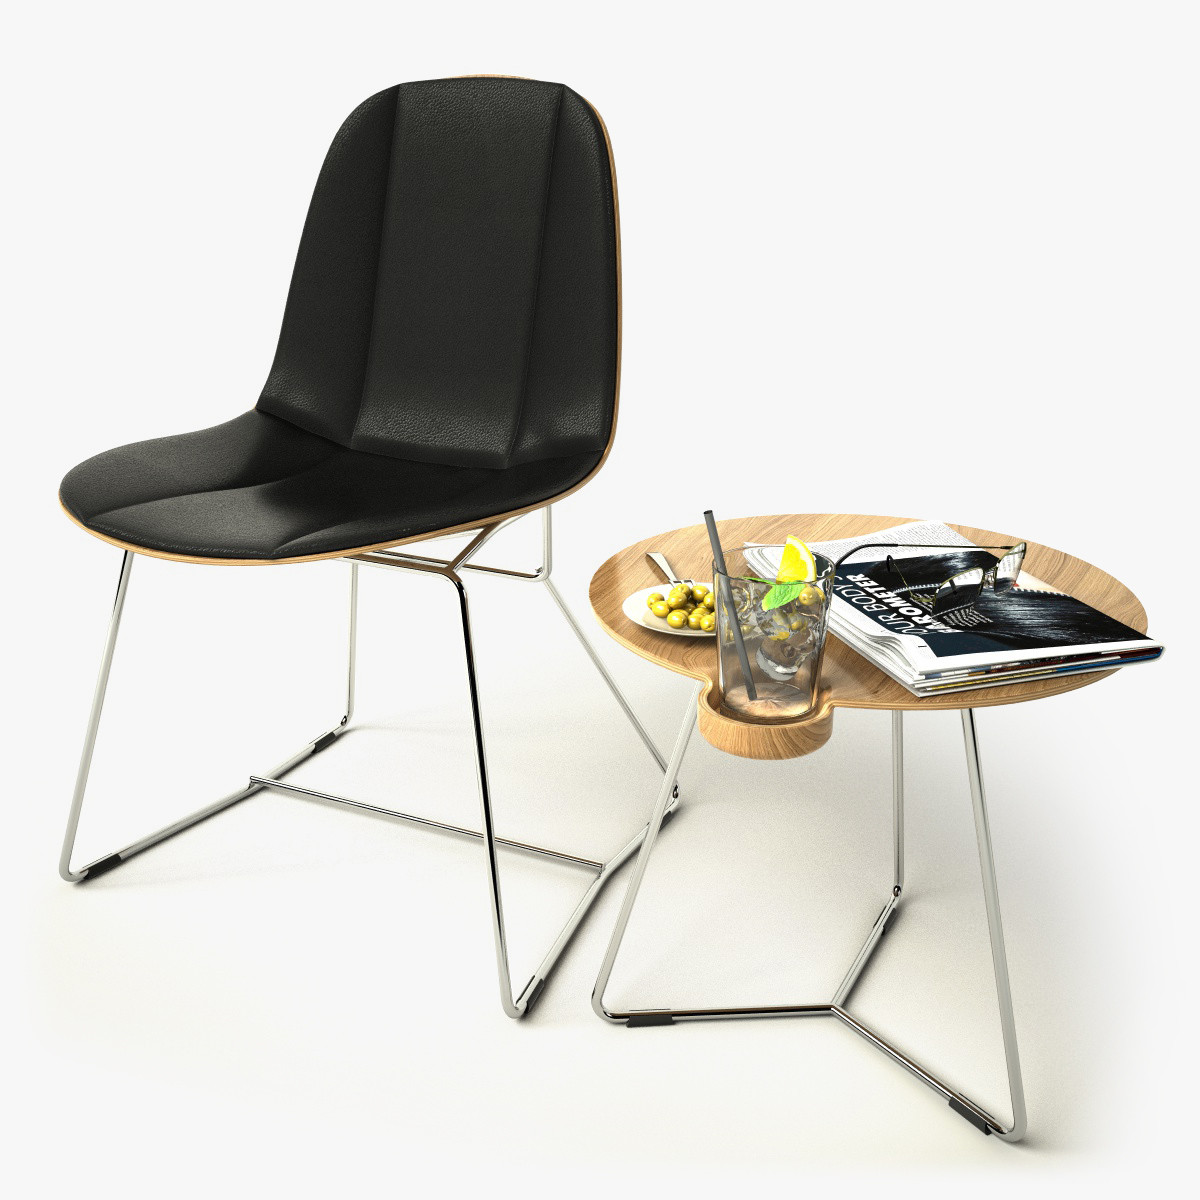 Bauhaus_Chair_&_Table_Main_1.jpg